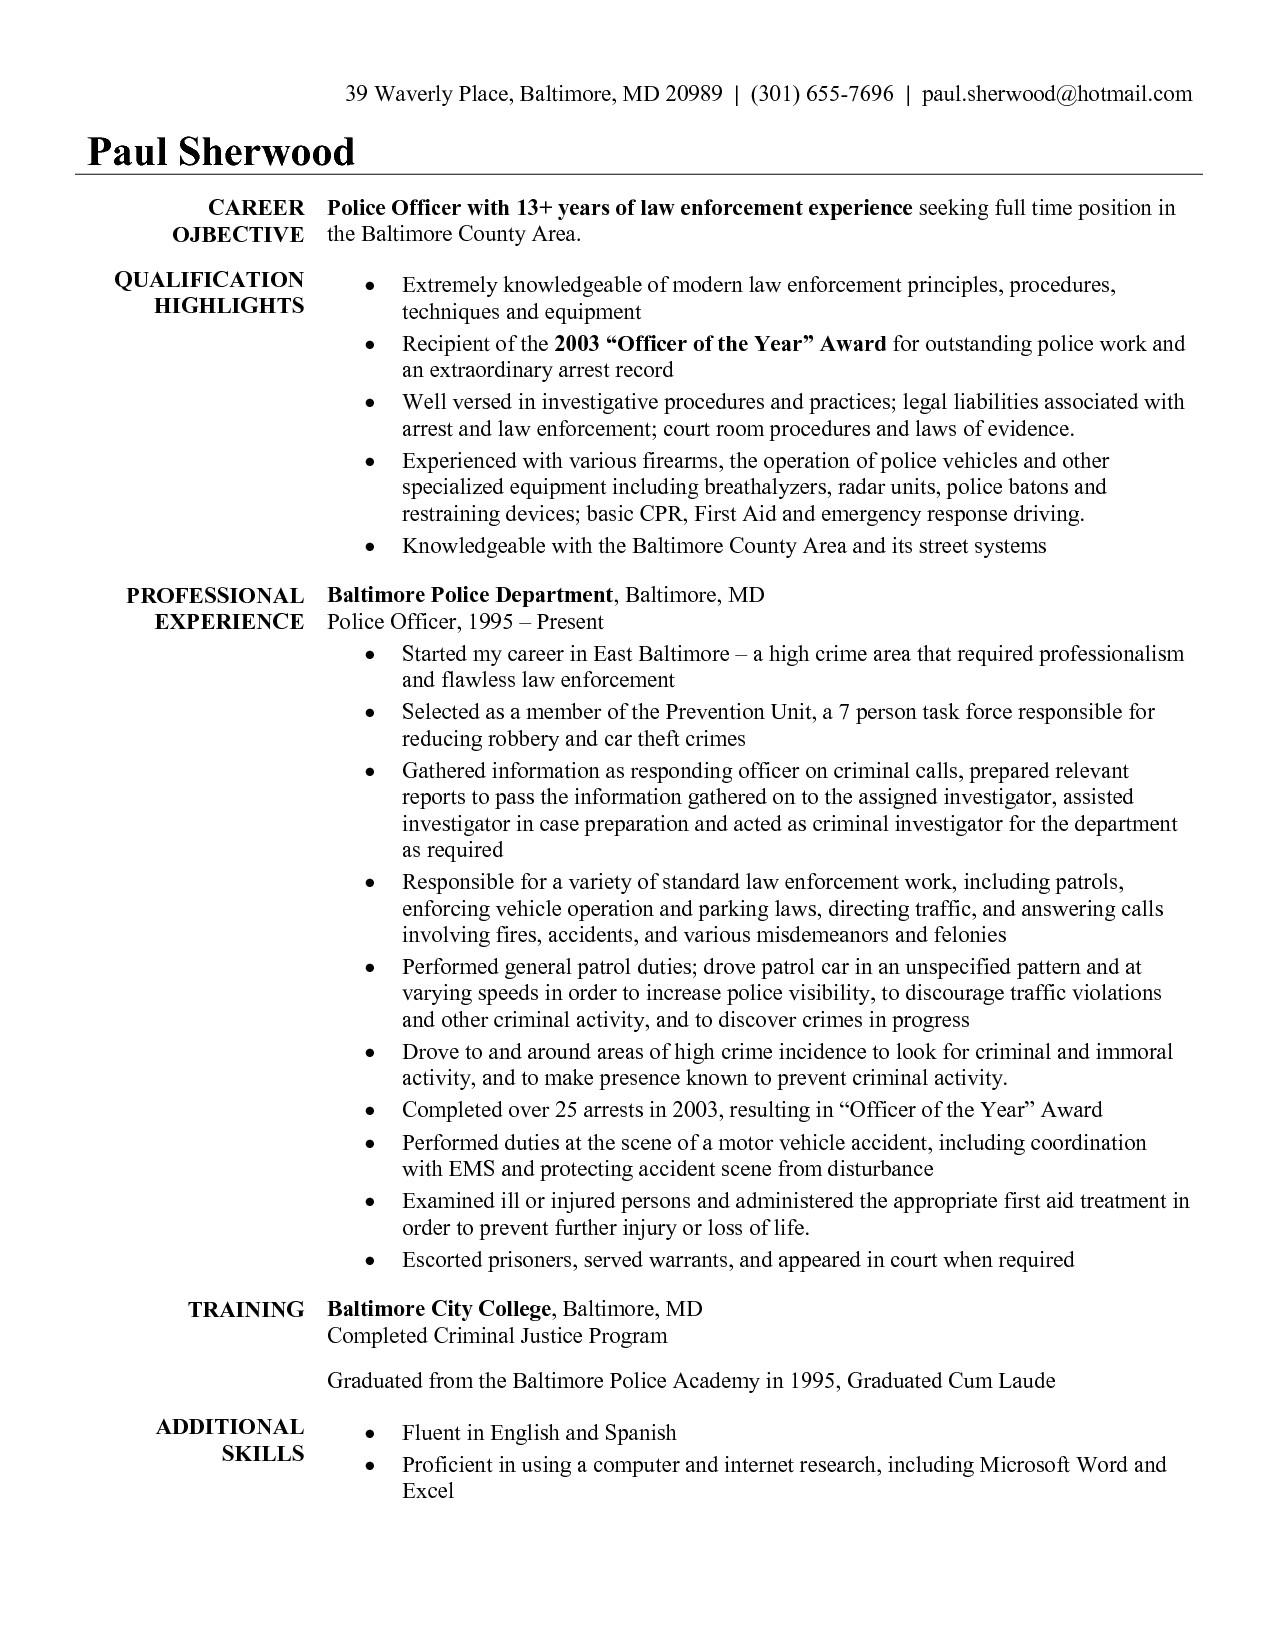 Sample Resume for Police Officer with No Experience Resume for Police Officer with No Experience Free